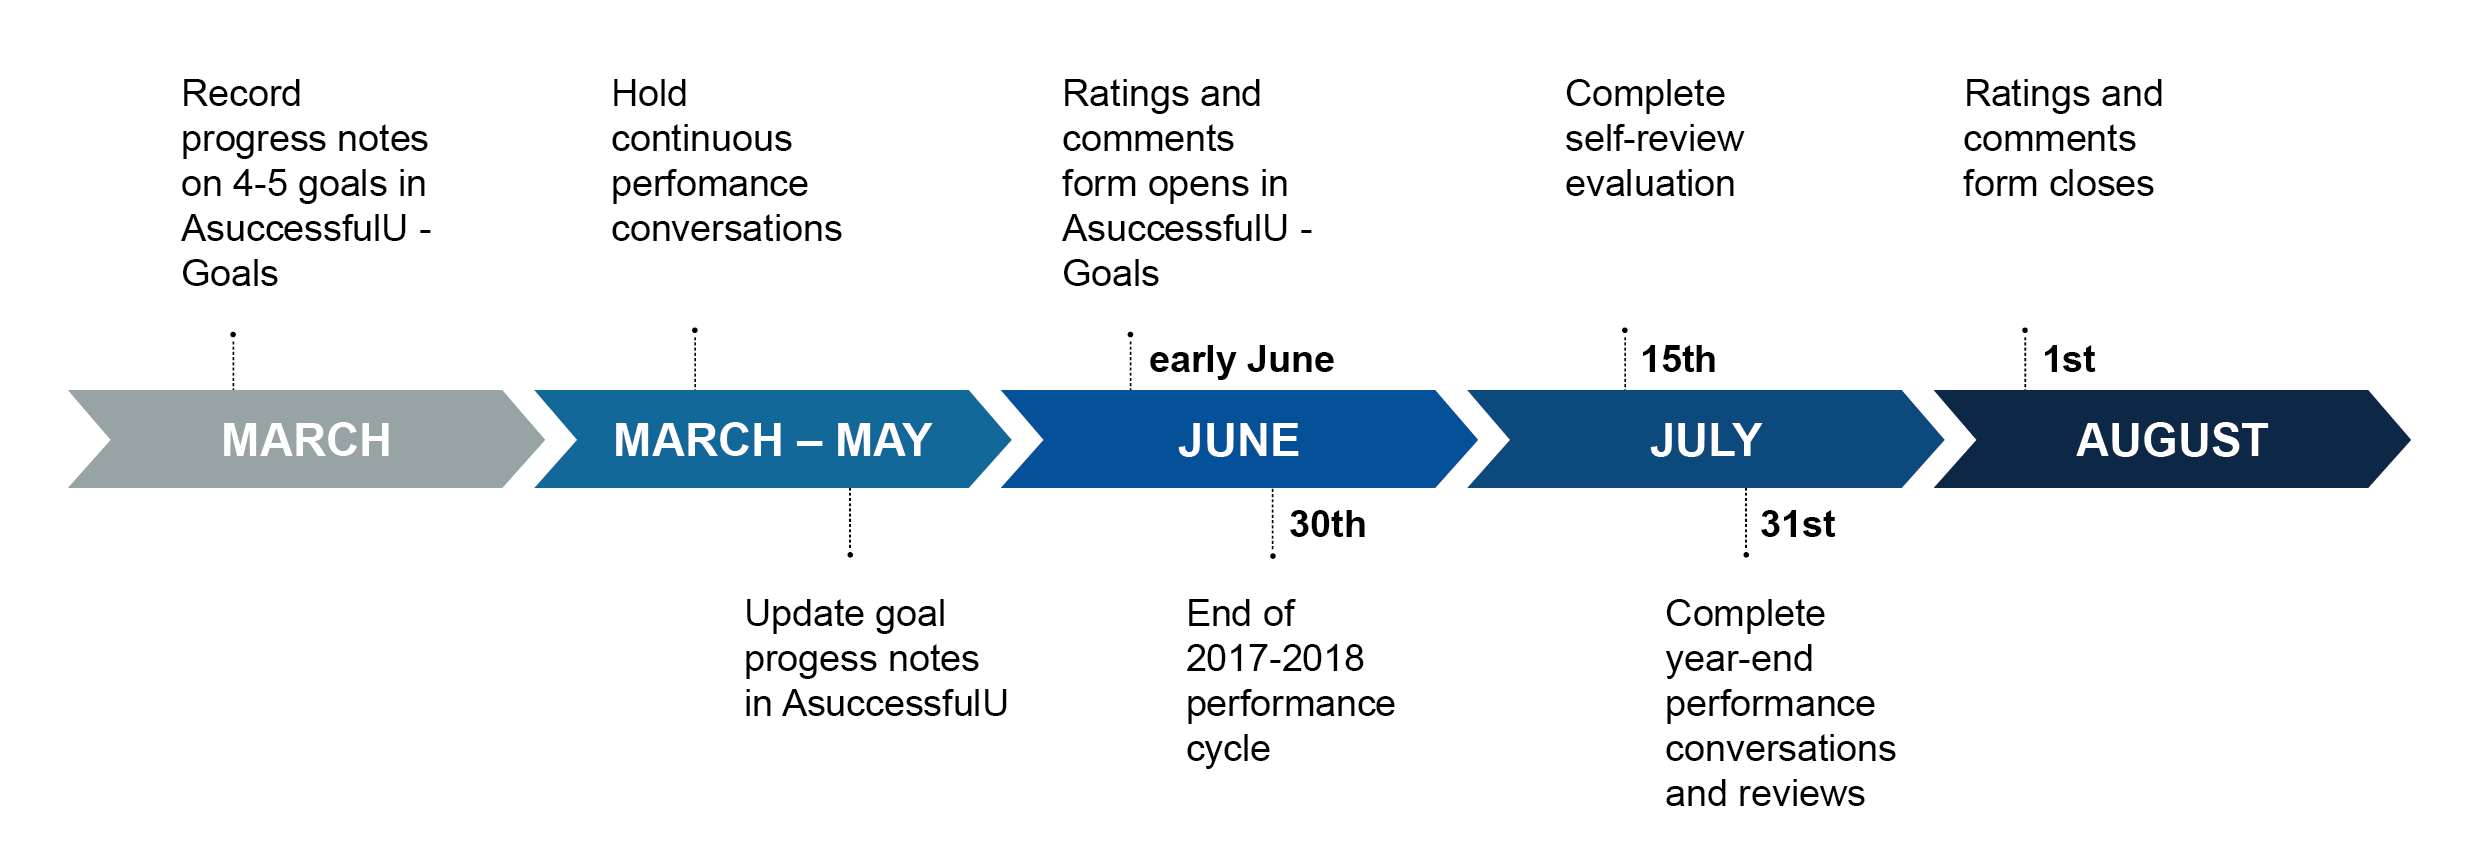 2017-2018 Performance Management Timeline